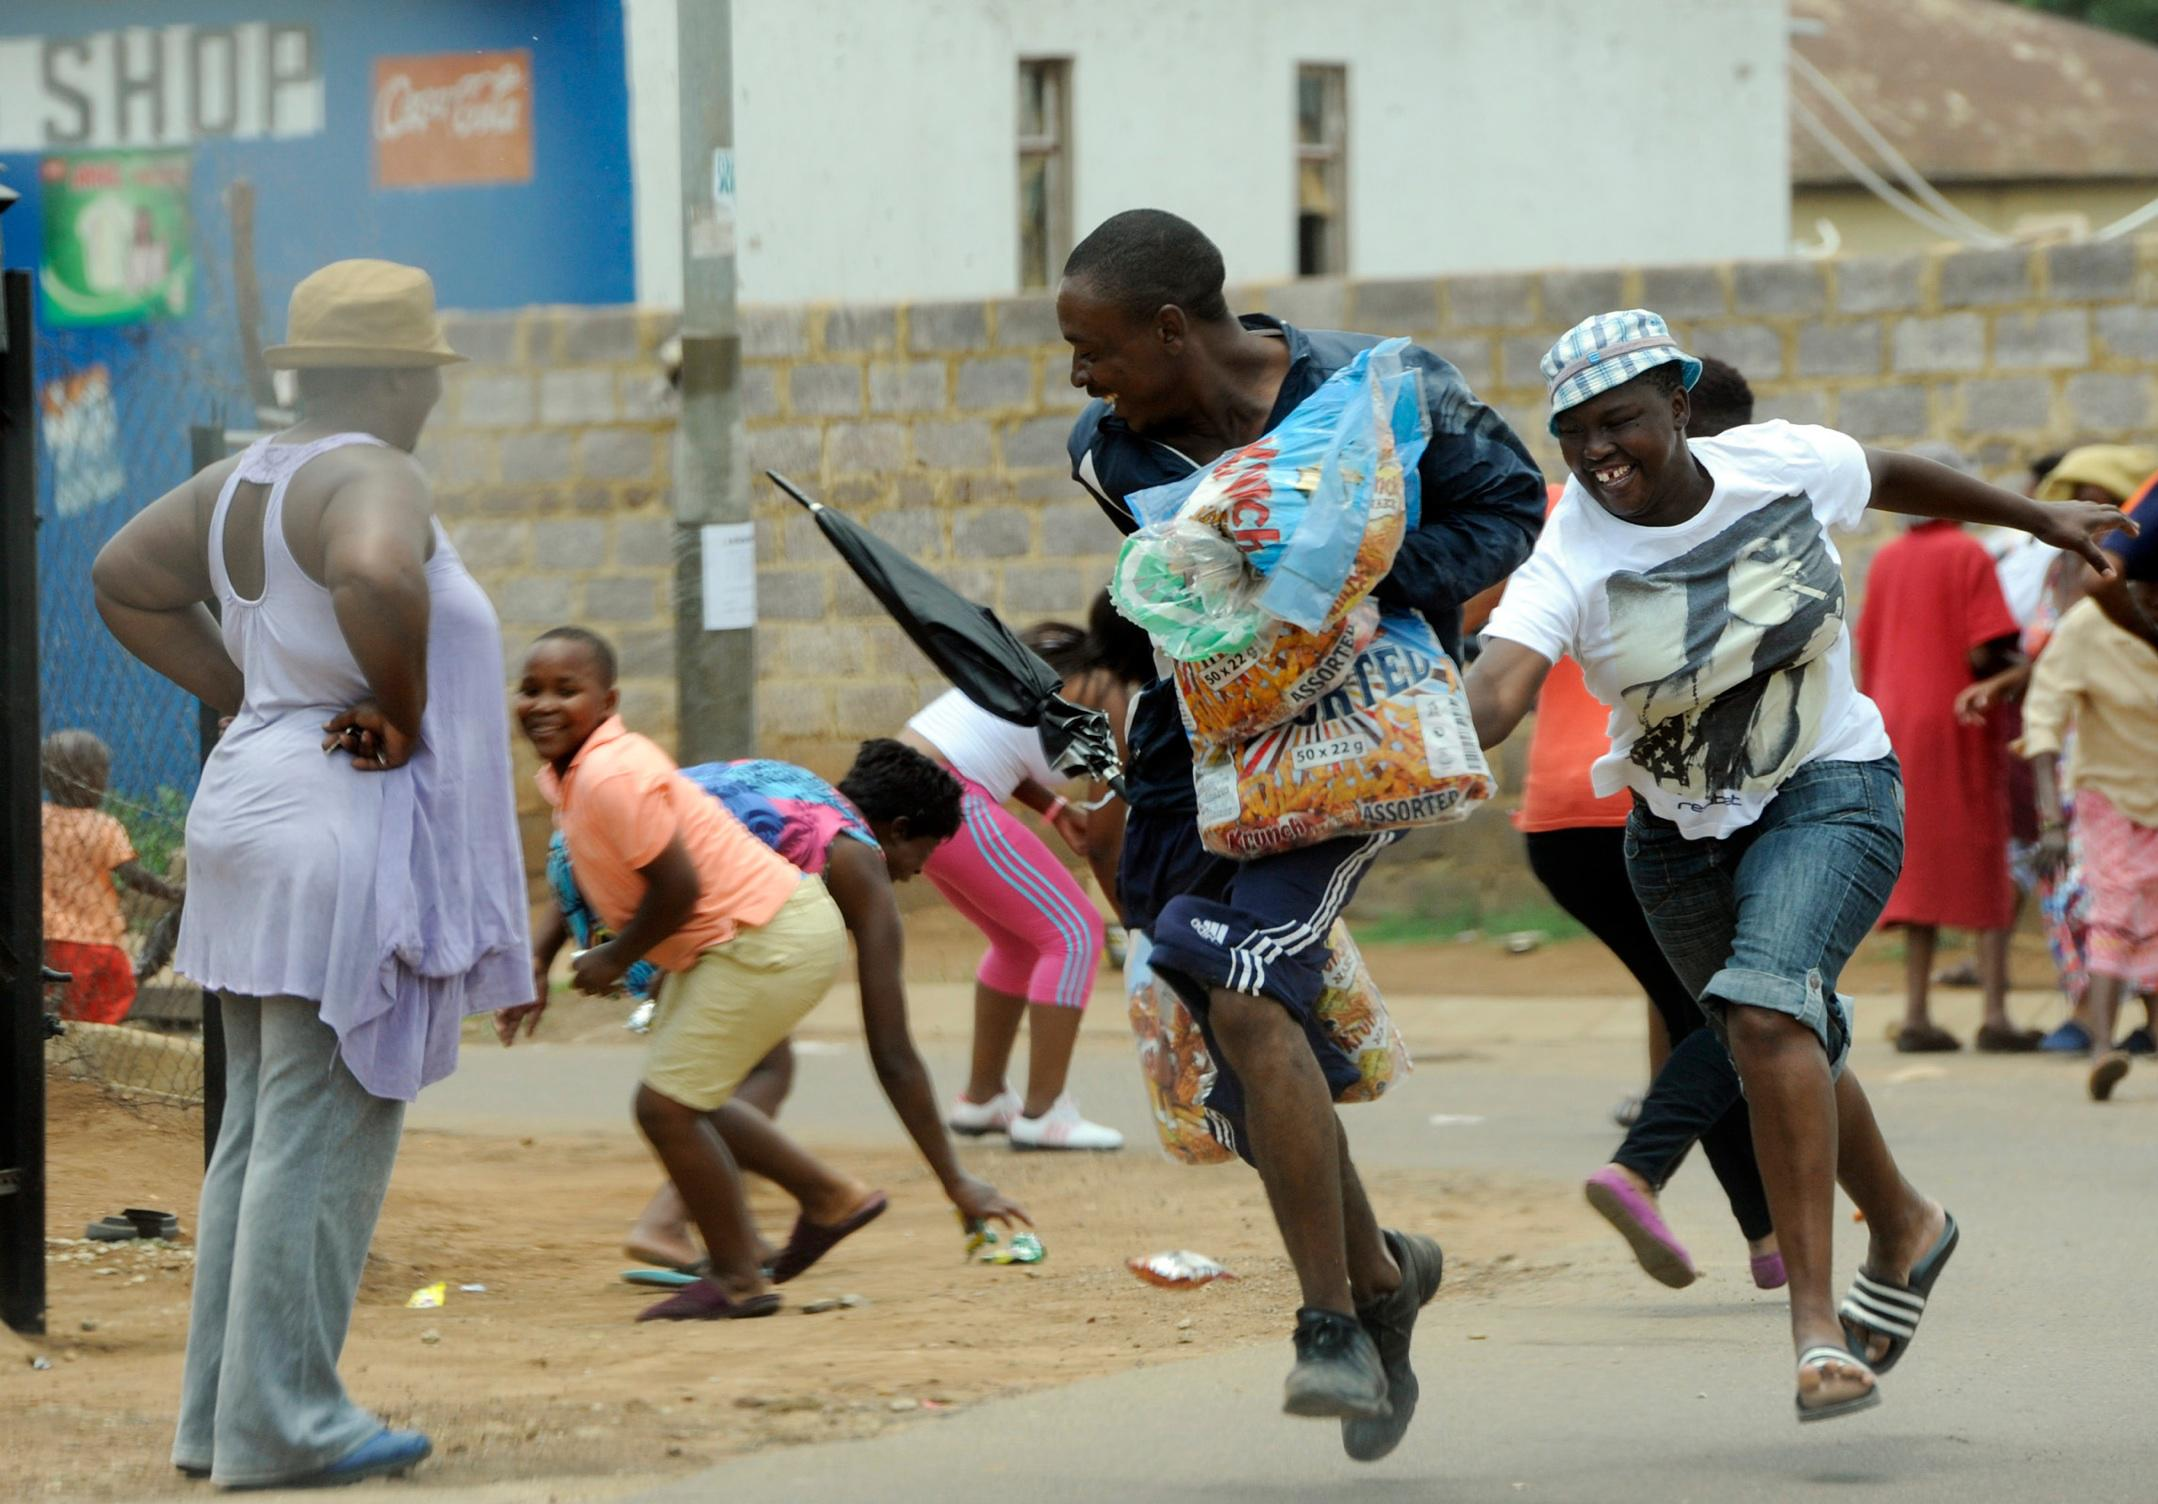 153 arrested in South Africa looting